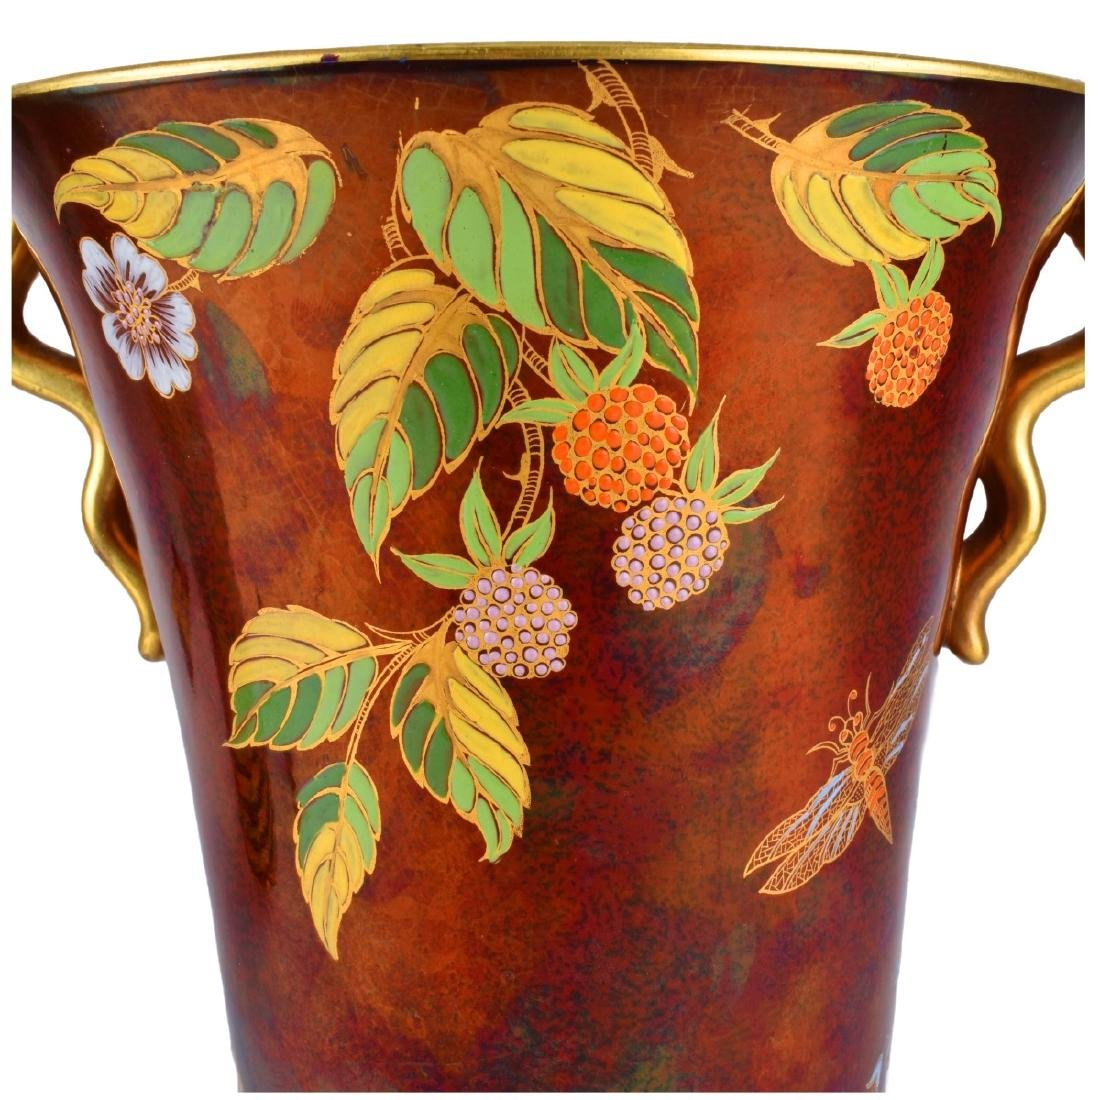 Carlton Ware Rouge Luster Pottery Vases - 3